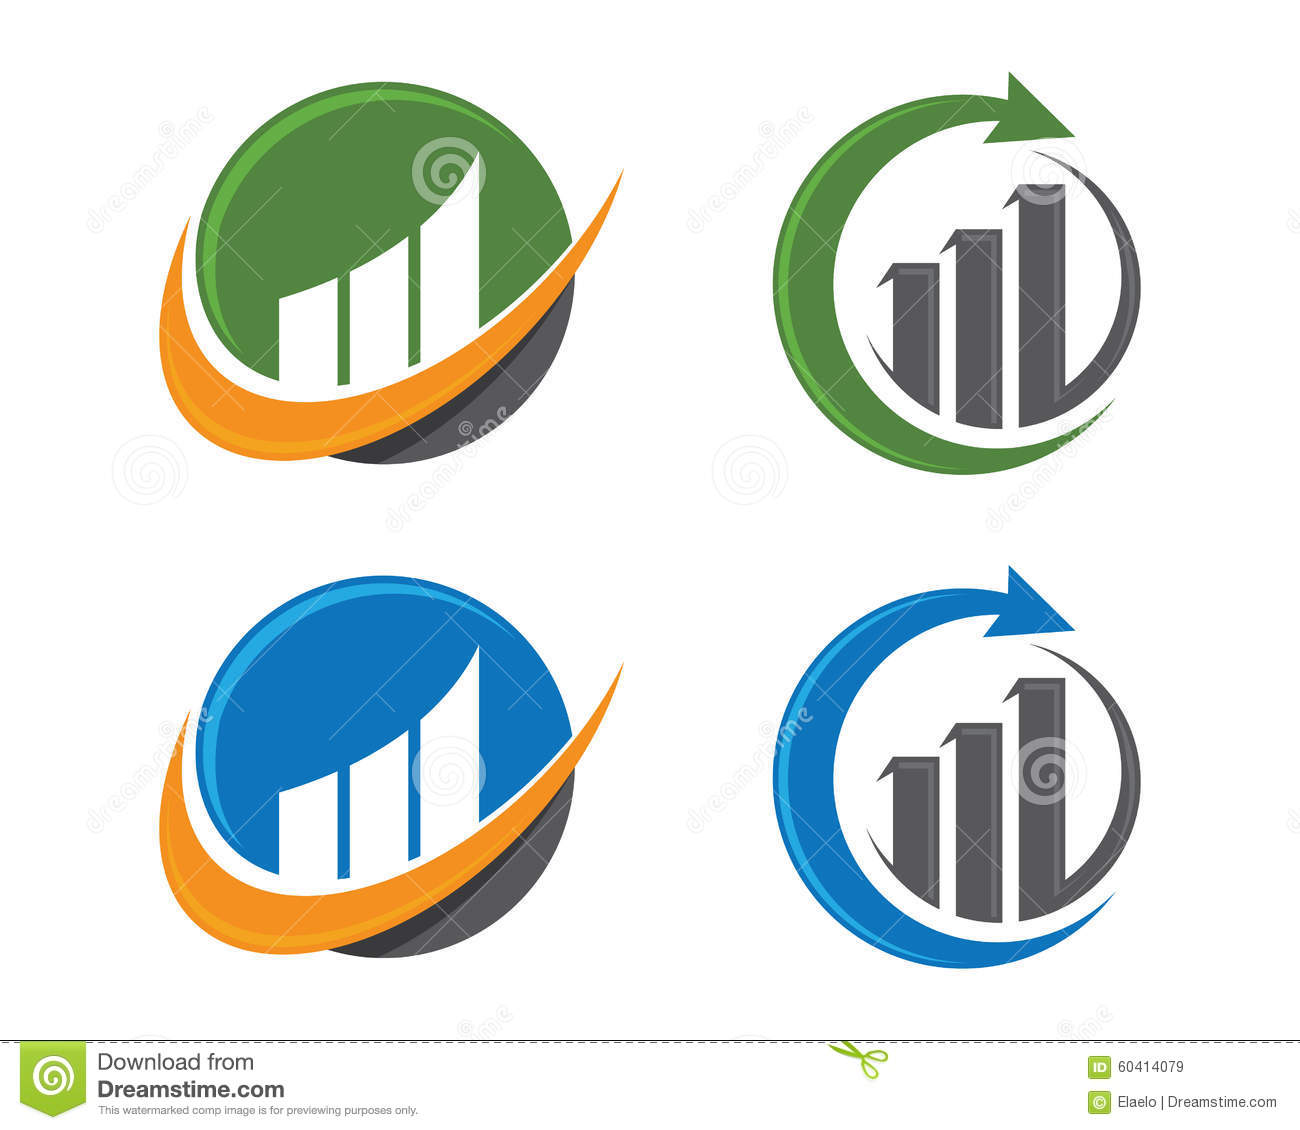 finance-logo-success-other-company-60414079.jpg